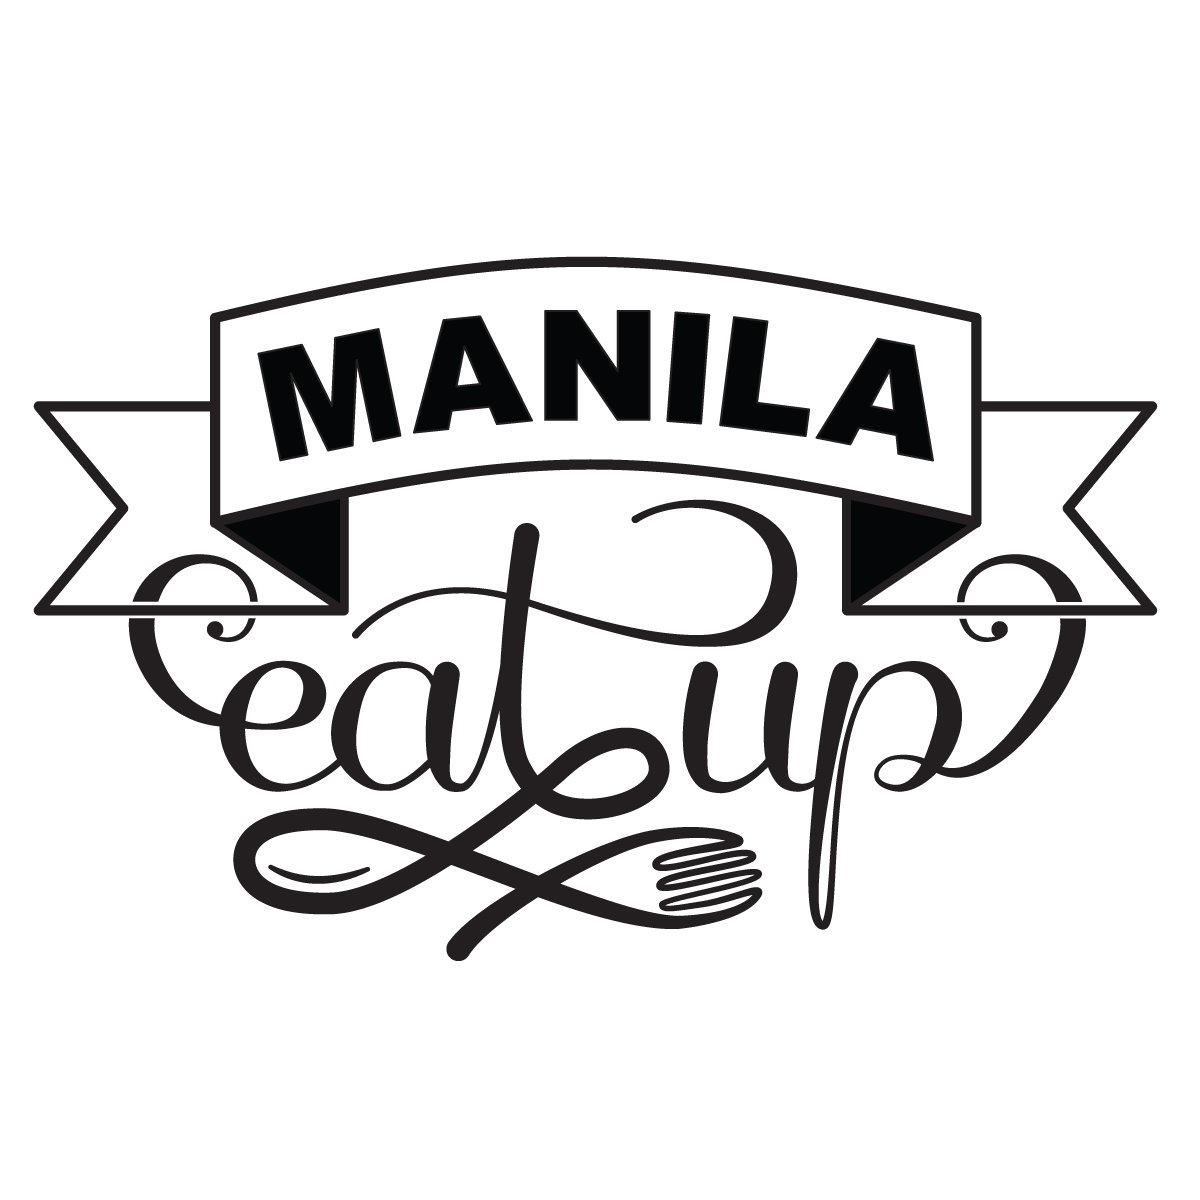 Welcome To Manila Eat Up. Make yourself at home.